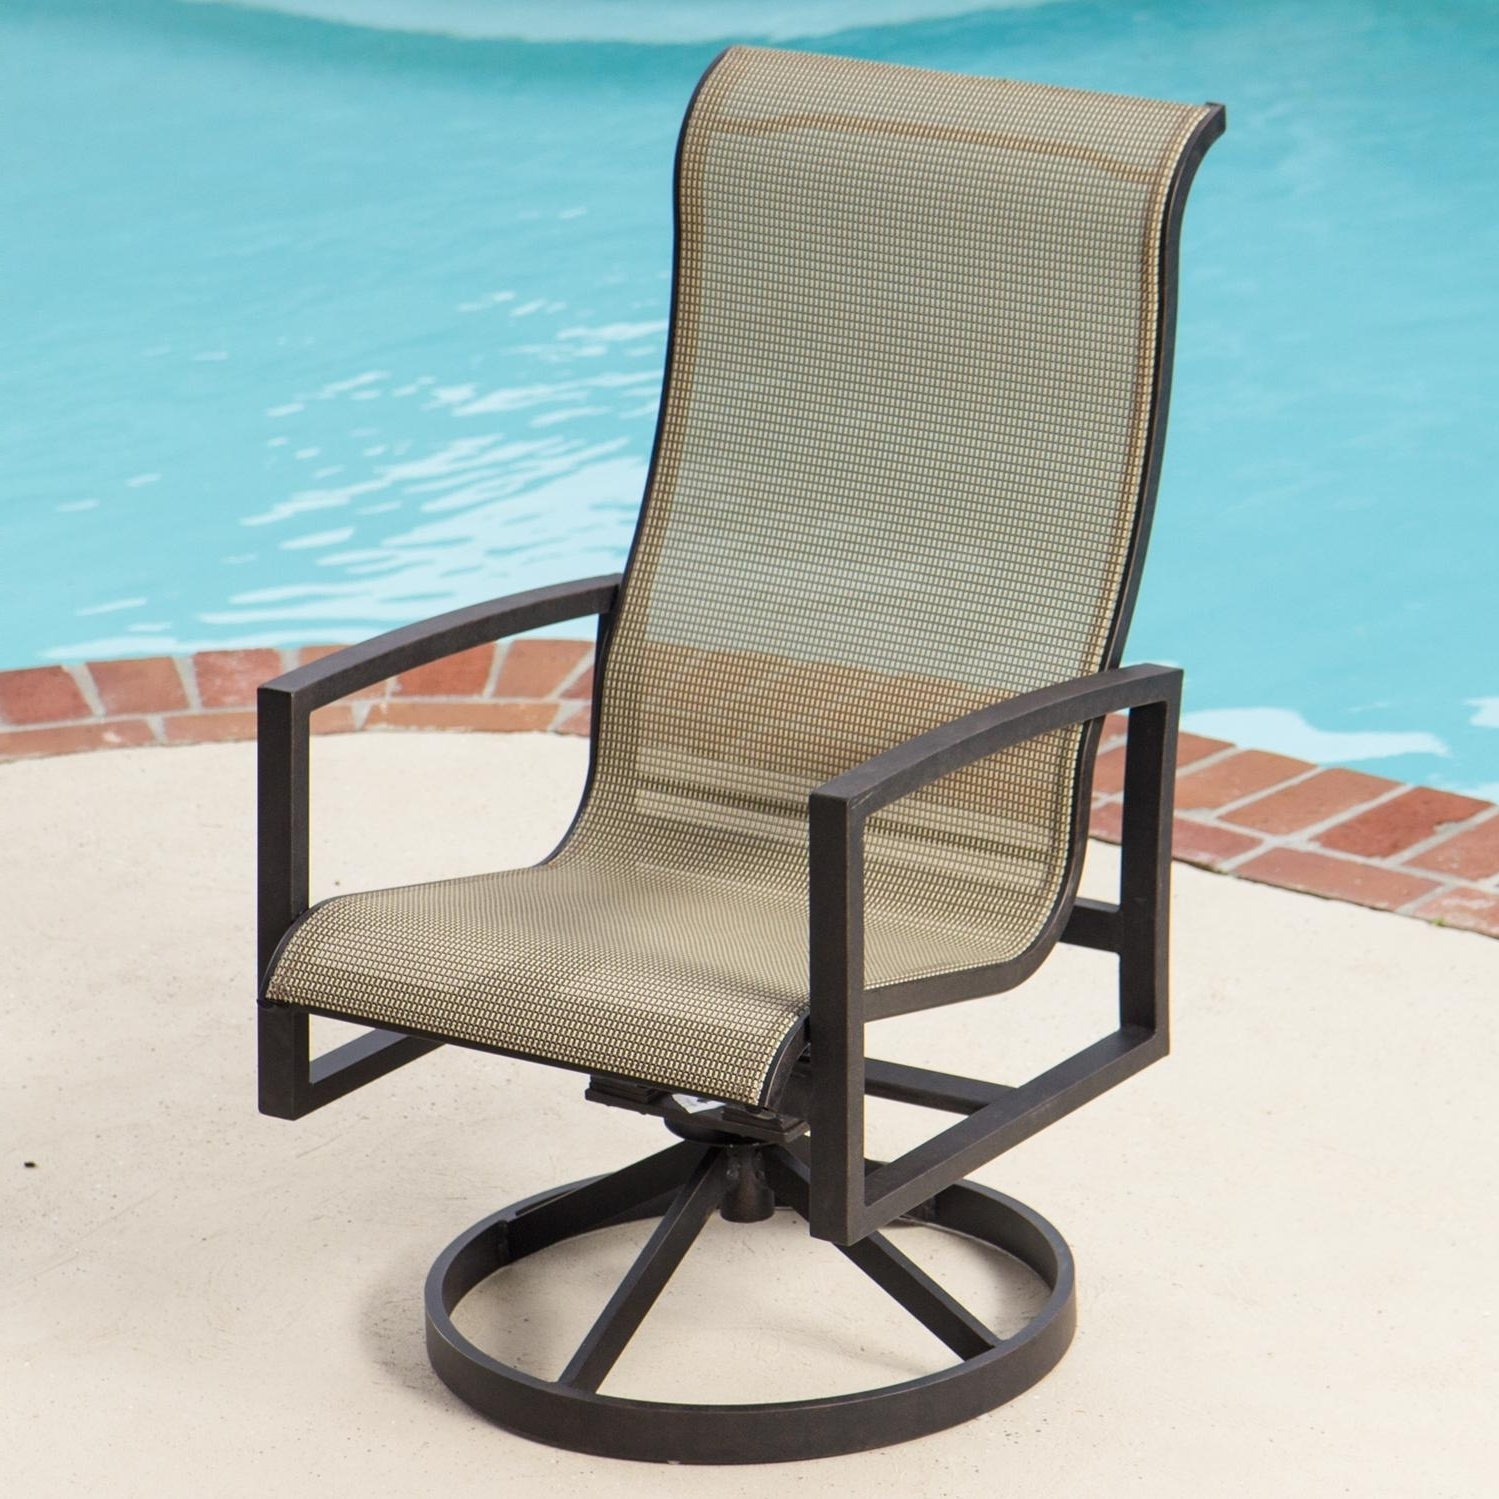 Famous Acadia Sling Patio Swivel Rocker Dining Chairlakeview Outdoor For Patio Sling Rocking Chairs (View 3 of 15)